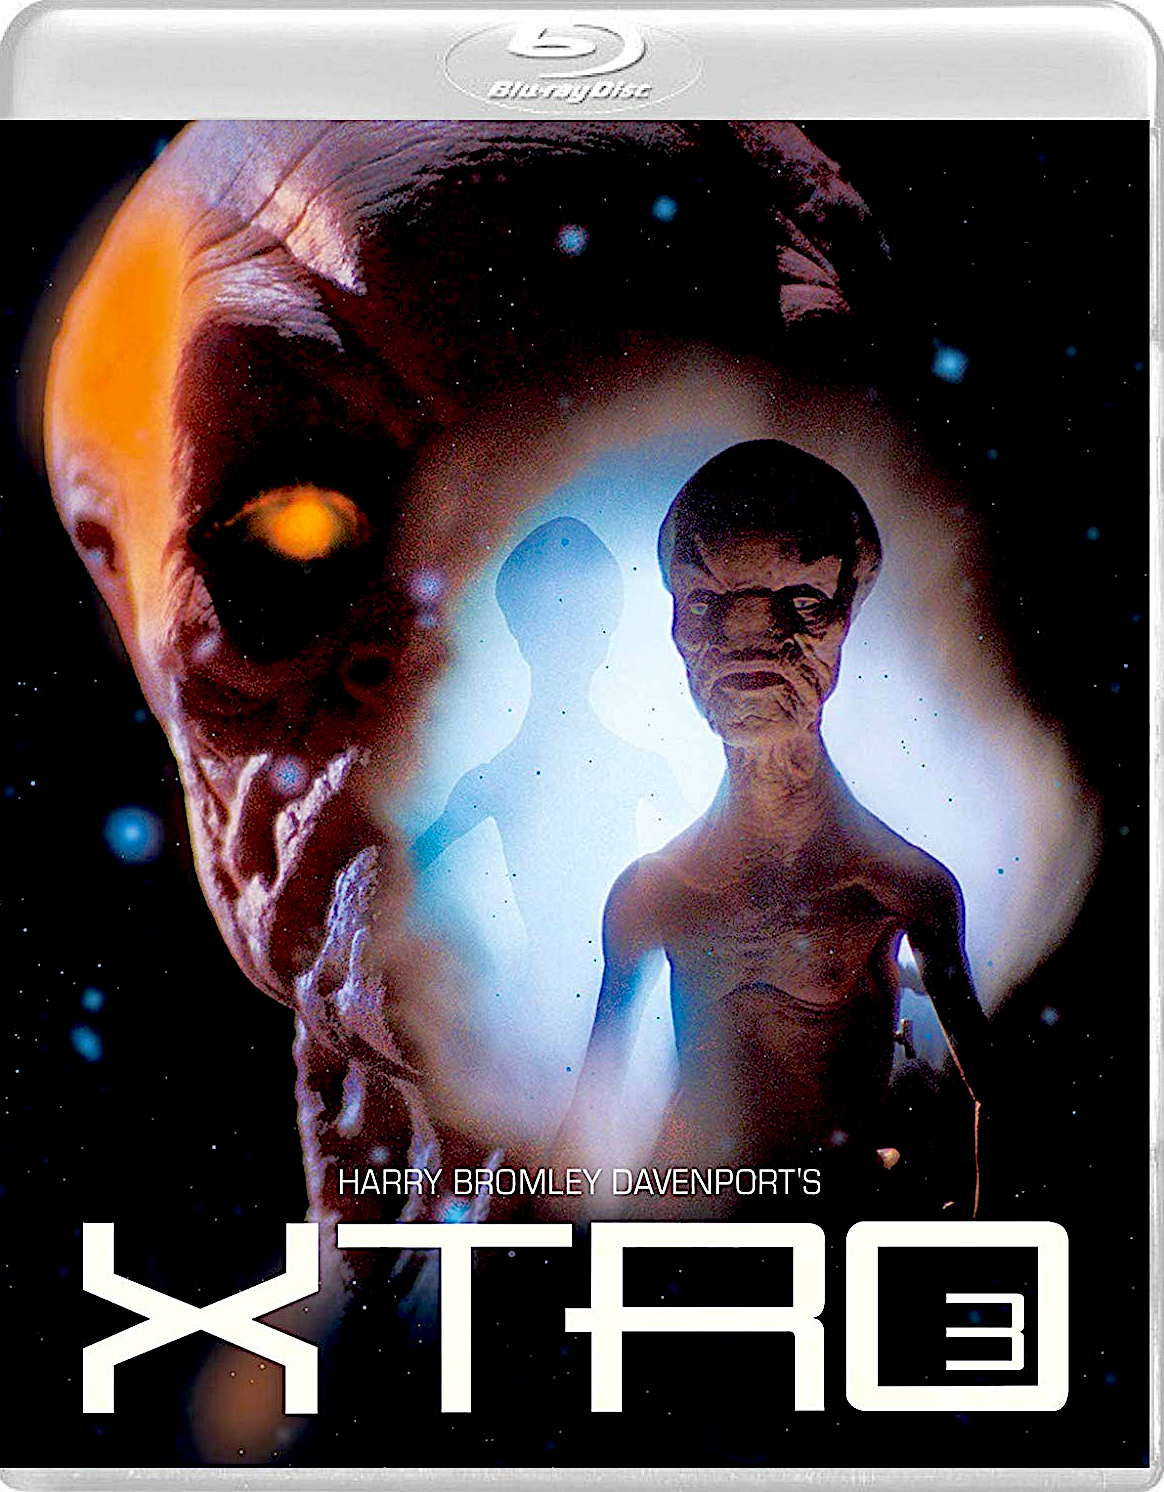 blu-ray and dvd covers: VINEGAR SYNDROME BLU-RAYS: THE